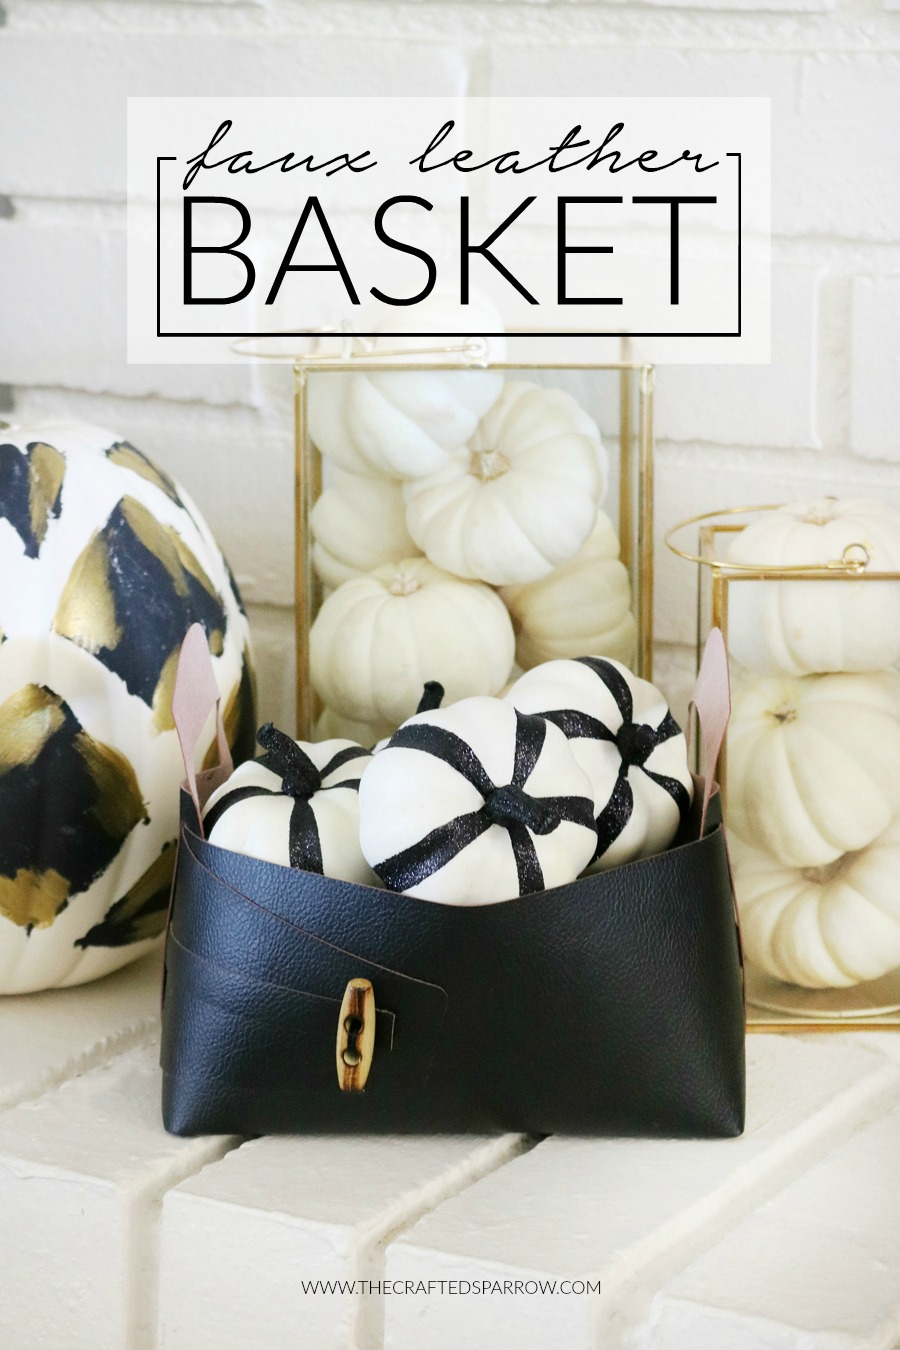 Cricut Maker Faux Leather Basket